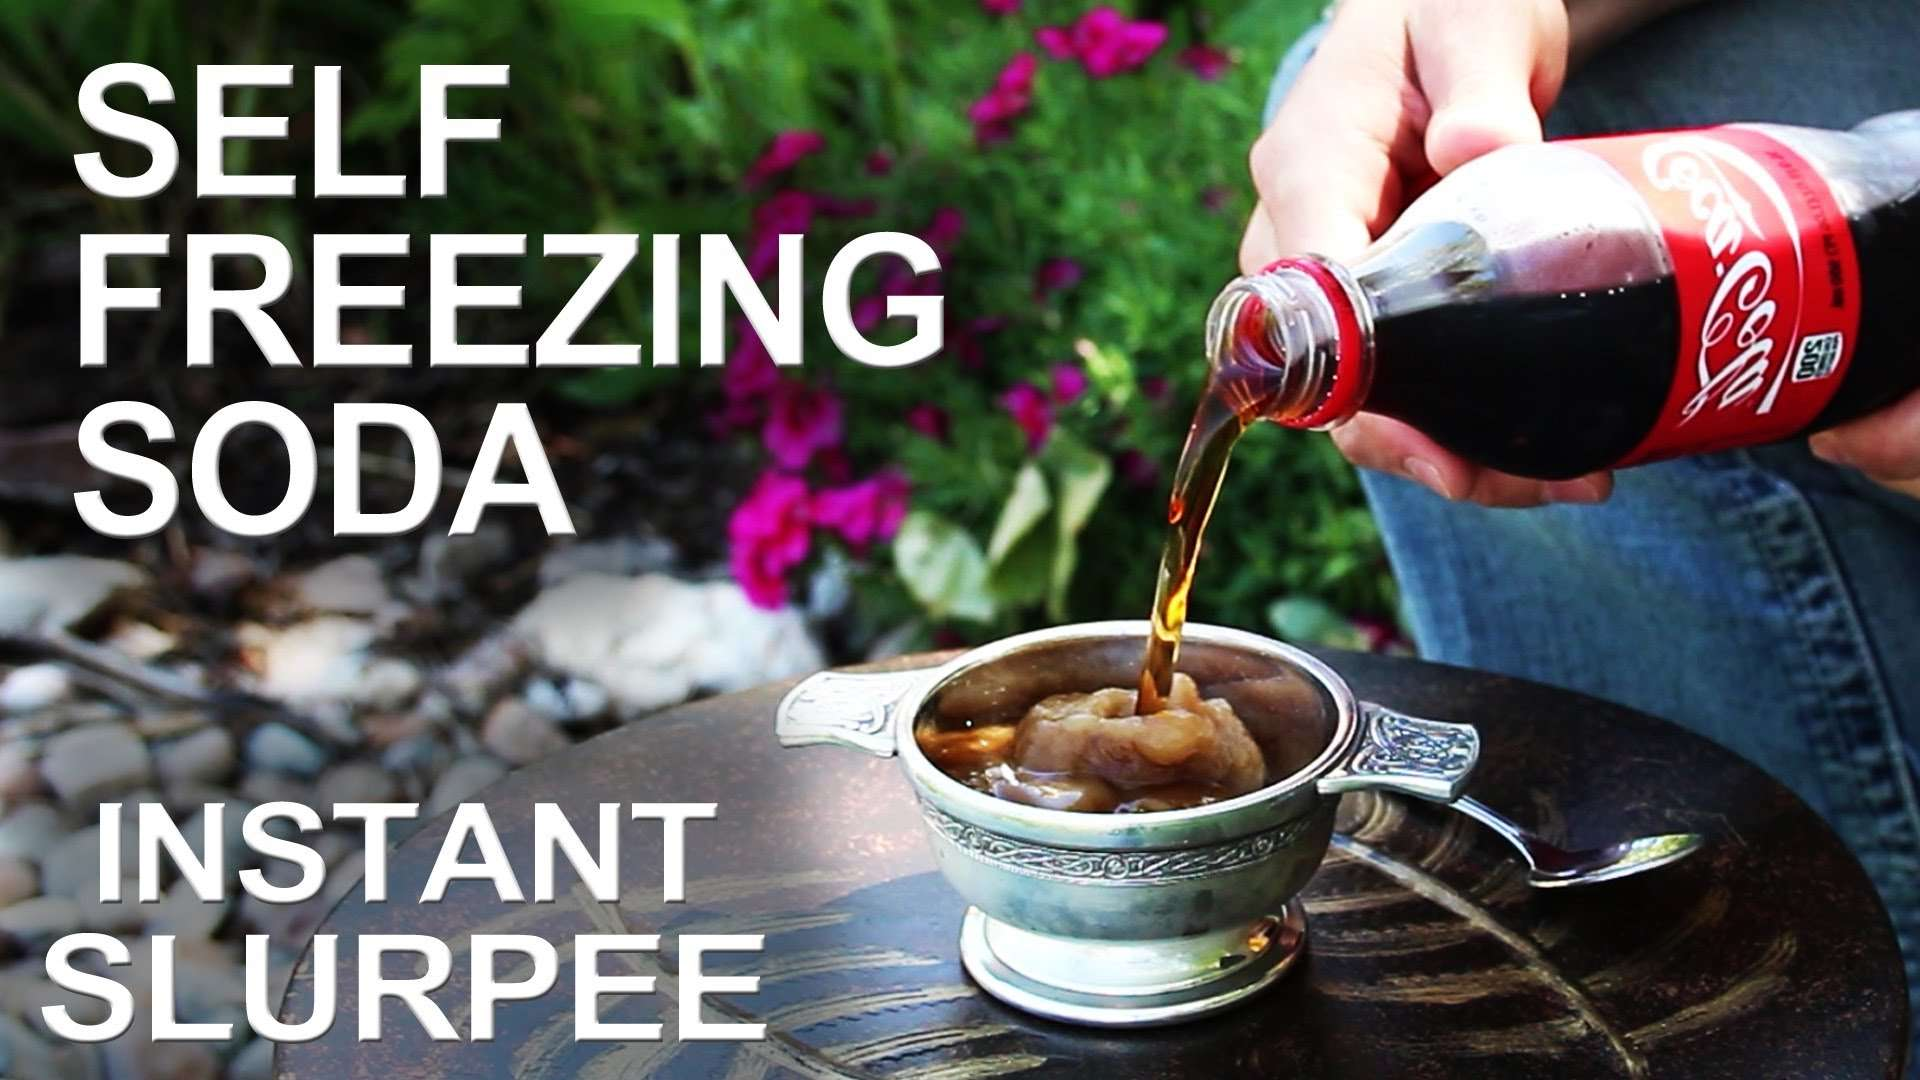 Self Freezing Coca-Cola (The trick that works on any soda!) - YouTube